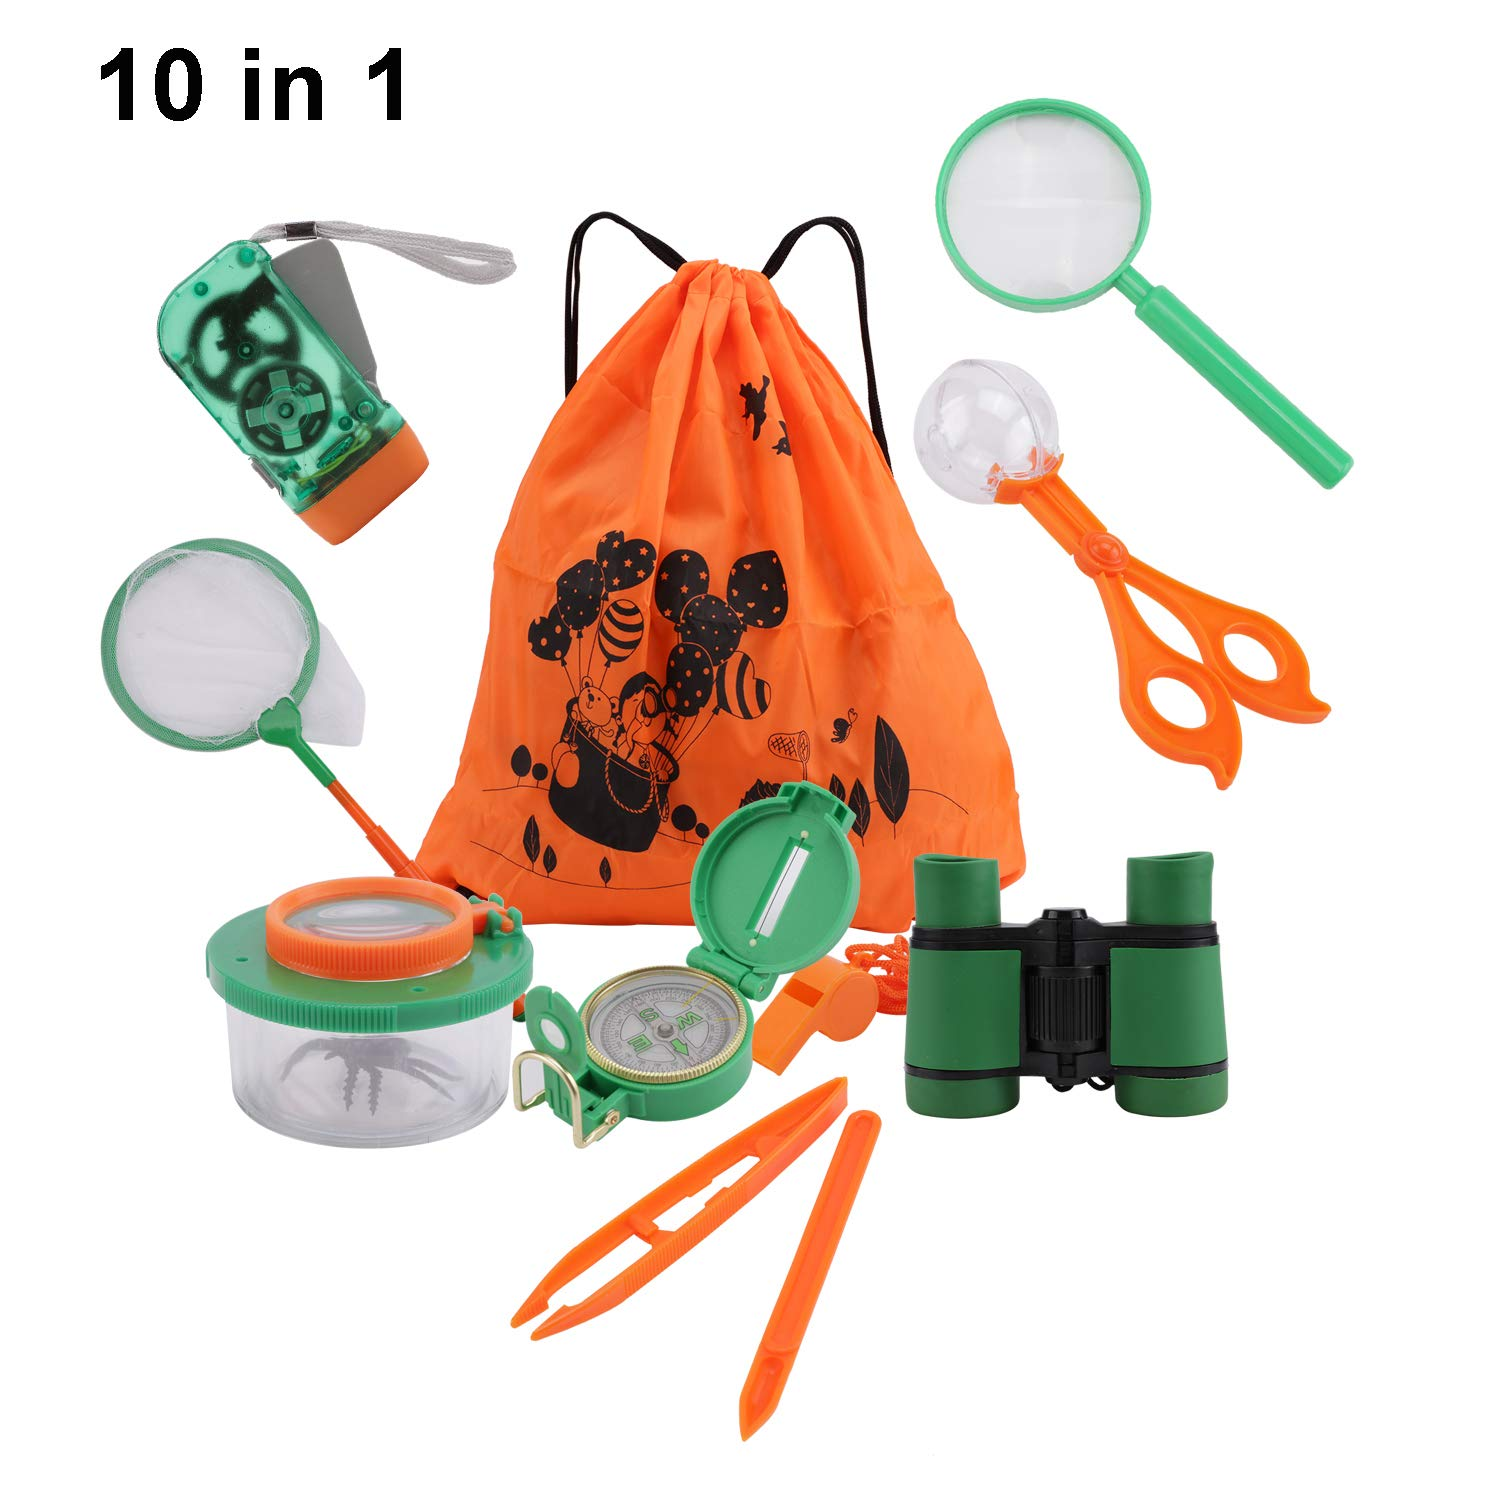 10 Pack Outdoor Explorer Kit, DesignerBox Kids Adventurer Exploration Equipment Set with Binoculars, Flashlight, Compass, Magnifying Glass, Backpack Bag, Bug Collector, Whistle, Bug Catcher, Butterfly Net & Tweezers for Camping, Hunting, Hiking &